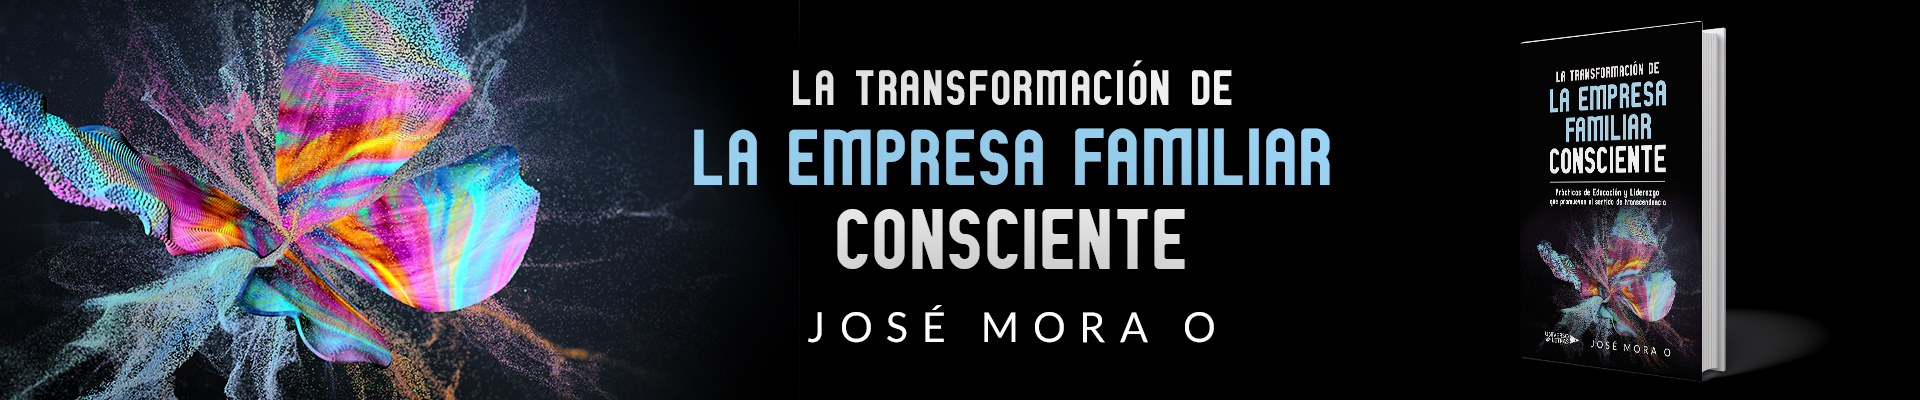 La Transformacion de la Empresa Familiar Consciente